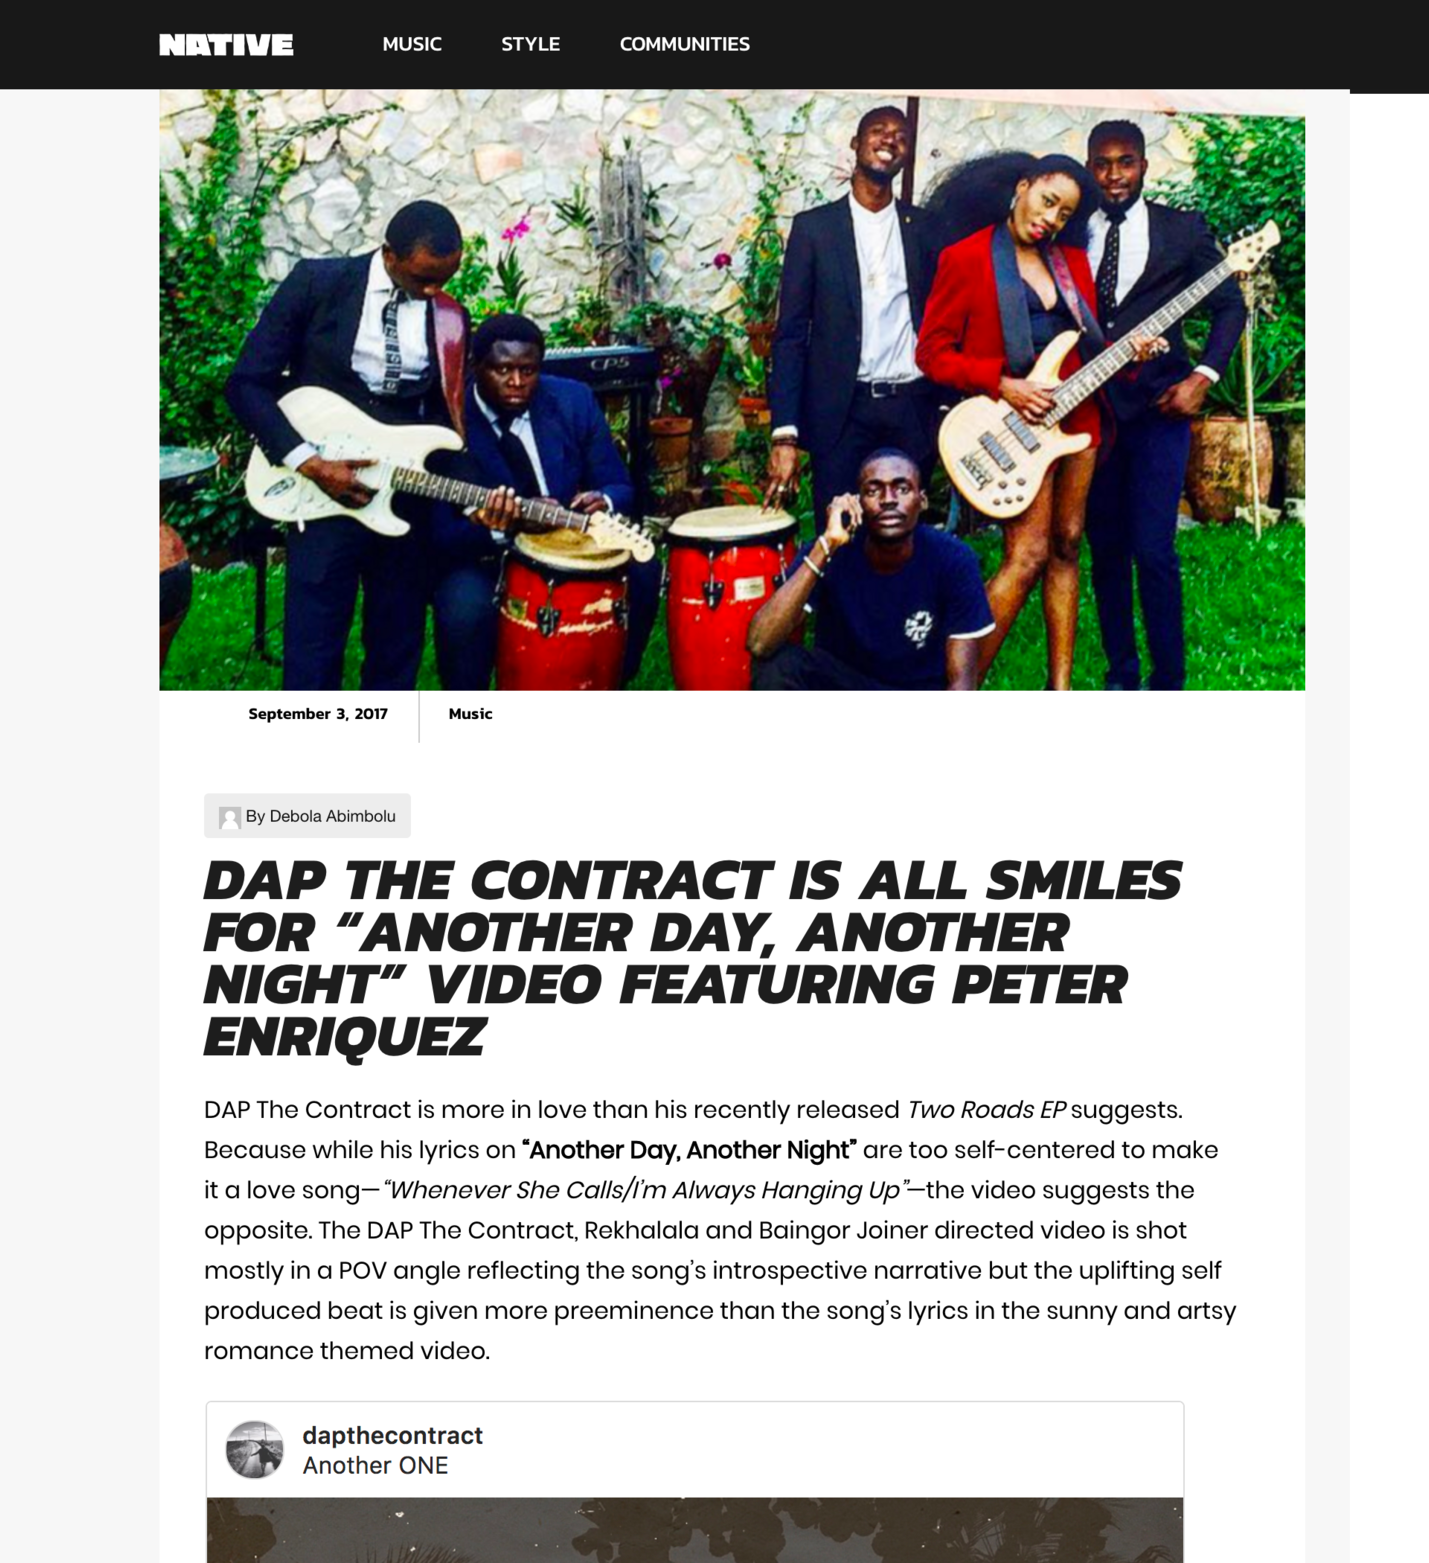 http://thenativemag.com/music/dap-contract-smiles-foranother-day-another-night-video-featuring-peter-enriquez/